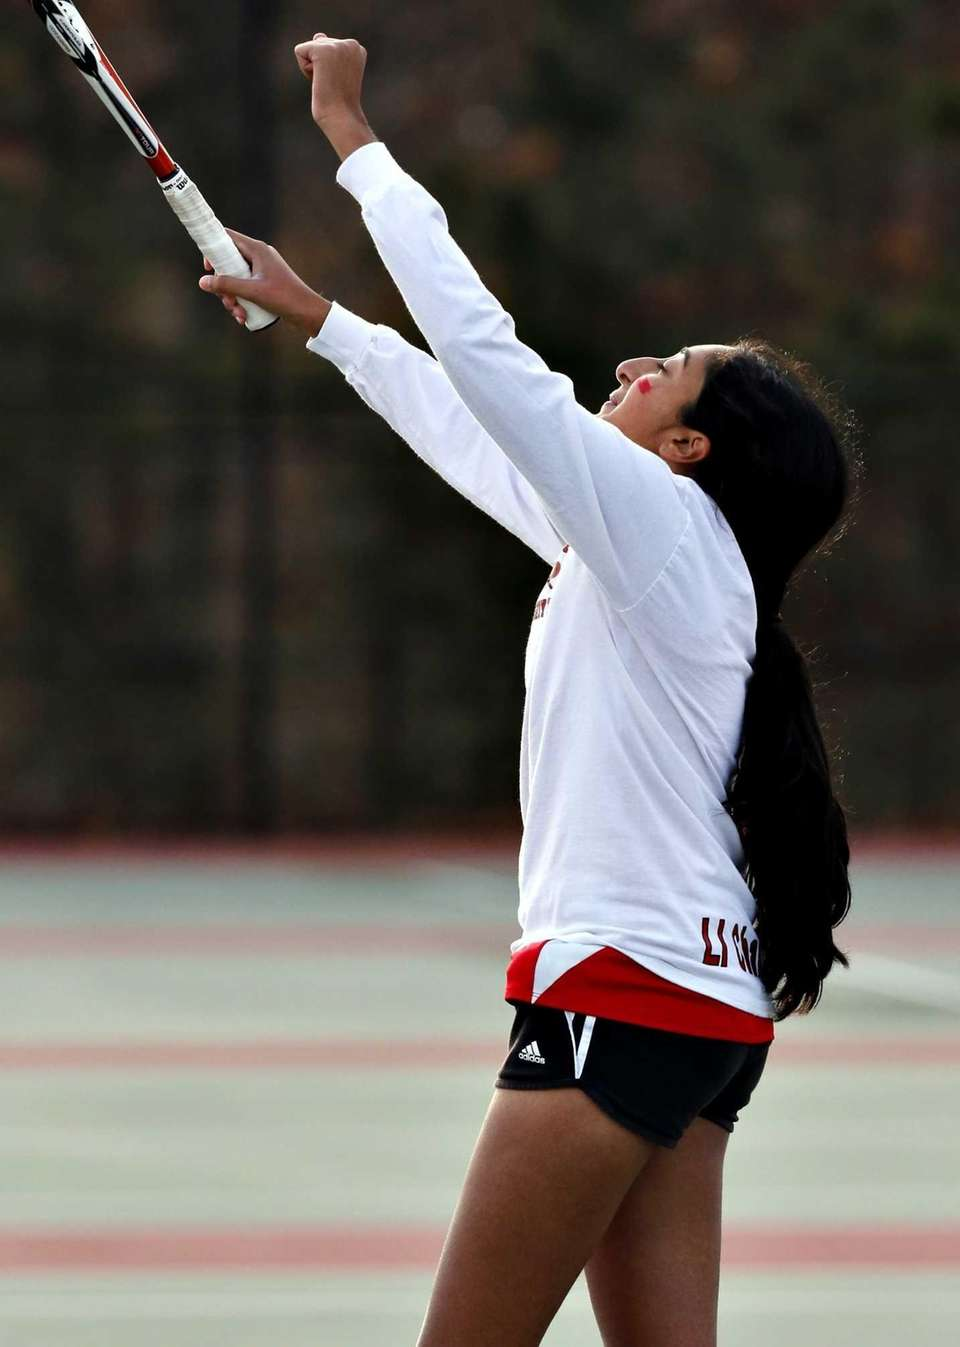 Syosset second singles player Rithika Reddy reacts after